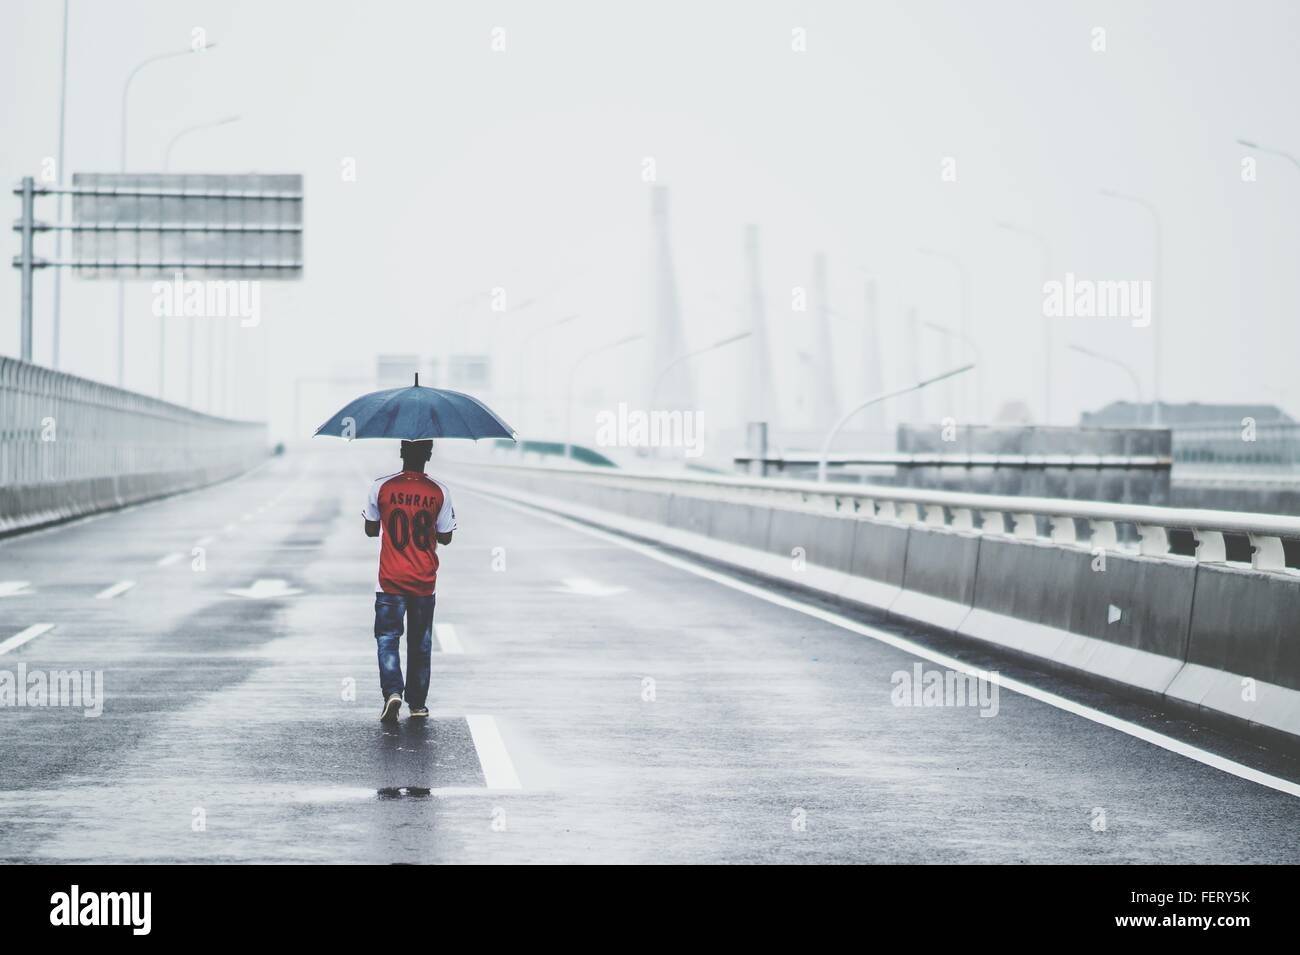 Rear View Of Man Carrying Umbrella While Walking On Road During Rainy Season - Stock Image